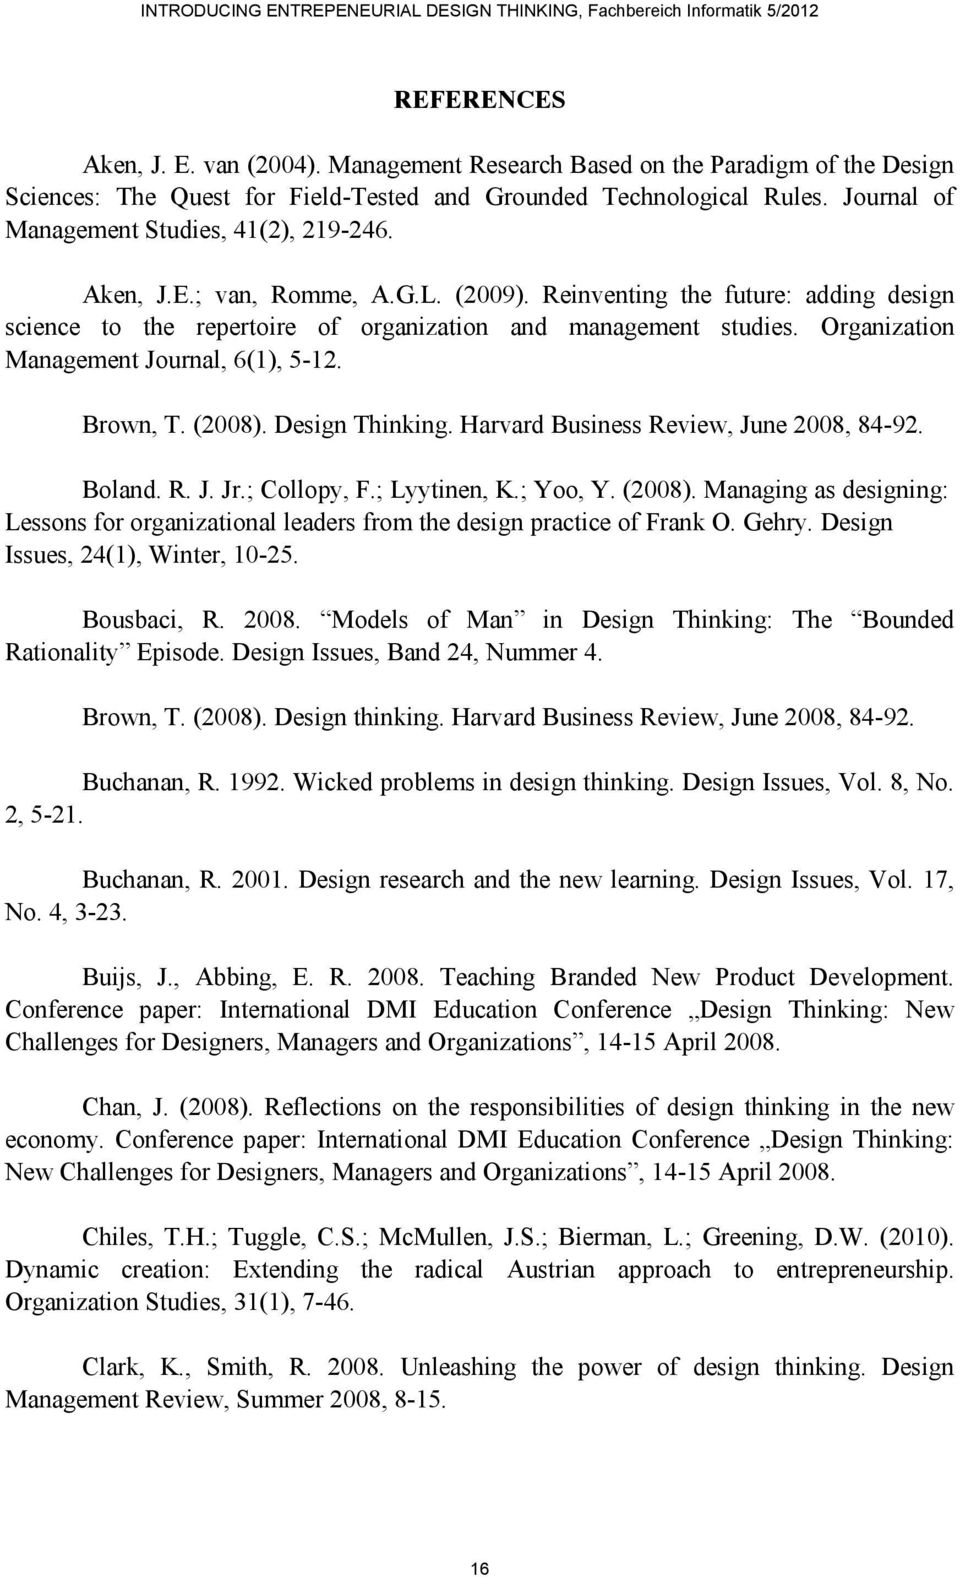 Organization Management Journal, 6(1), 5-12. Brown, T. (2008). Design Thinking. Harvard Business Review, June 2008, 84-92. Boland. R. J. Jr.; Collopy, F.; Lyytinen, K.; Yoo, Y. (2008). Managing as designing: Lessons for organizational leaders from the design practice of Frank O.